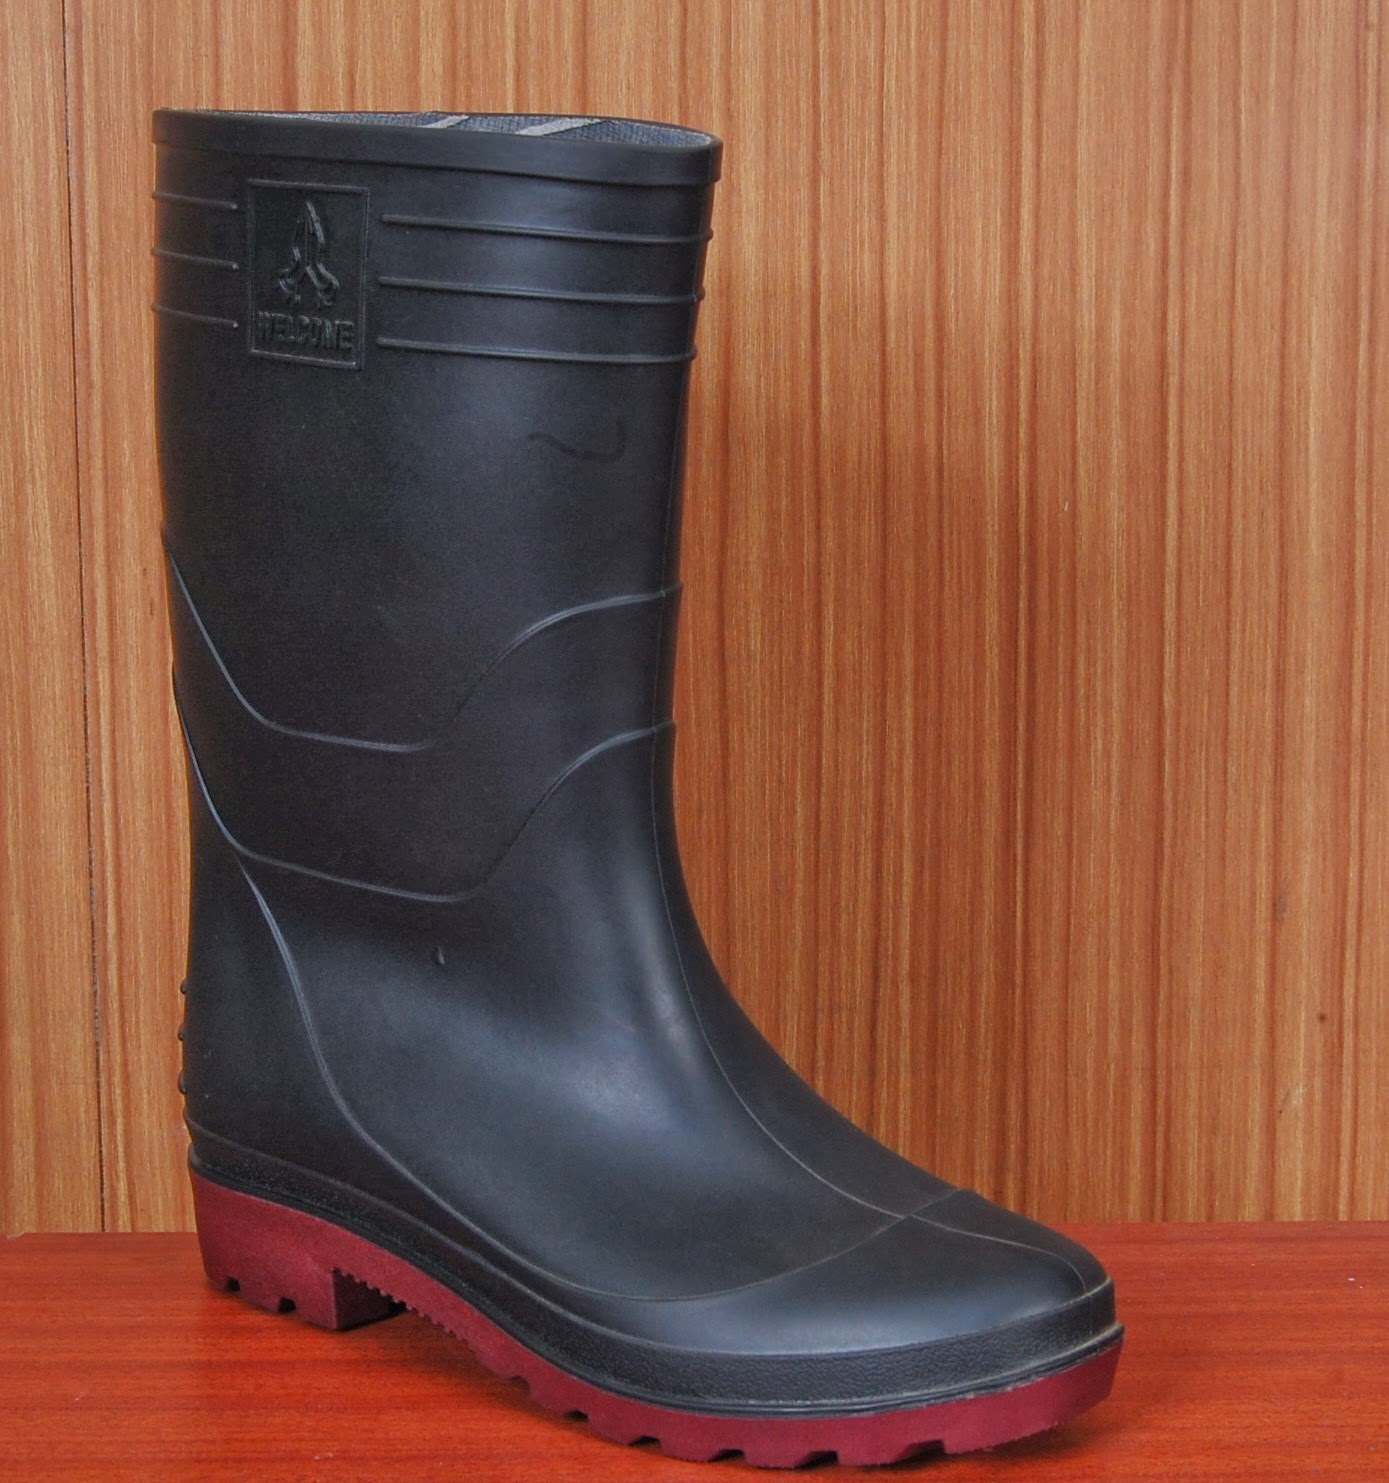 Hillson Shoes - Safety Shoes Manufacturer/ Supplier: Safety